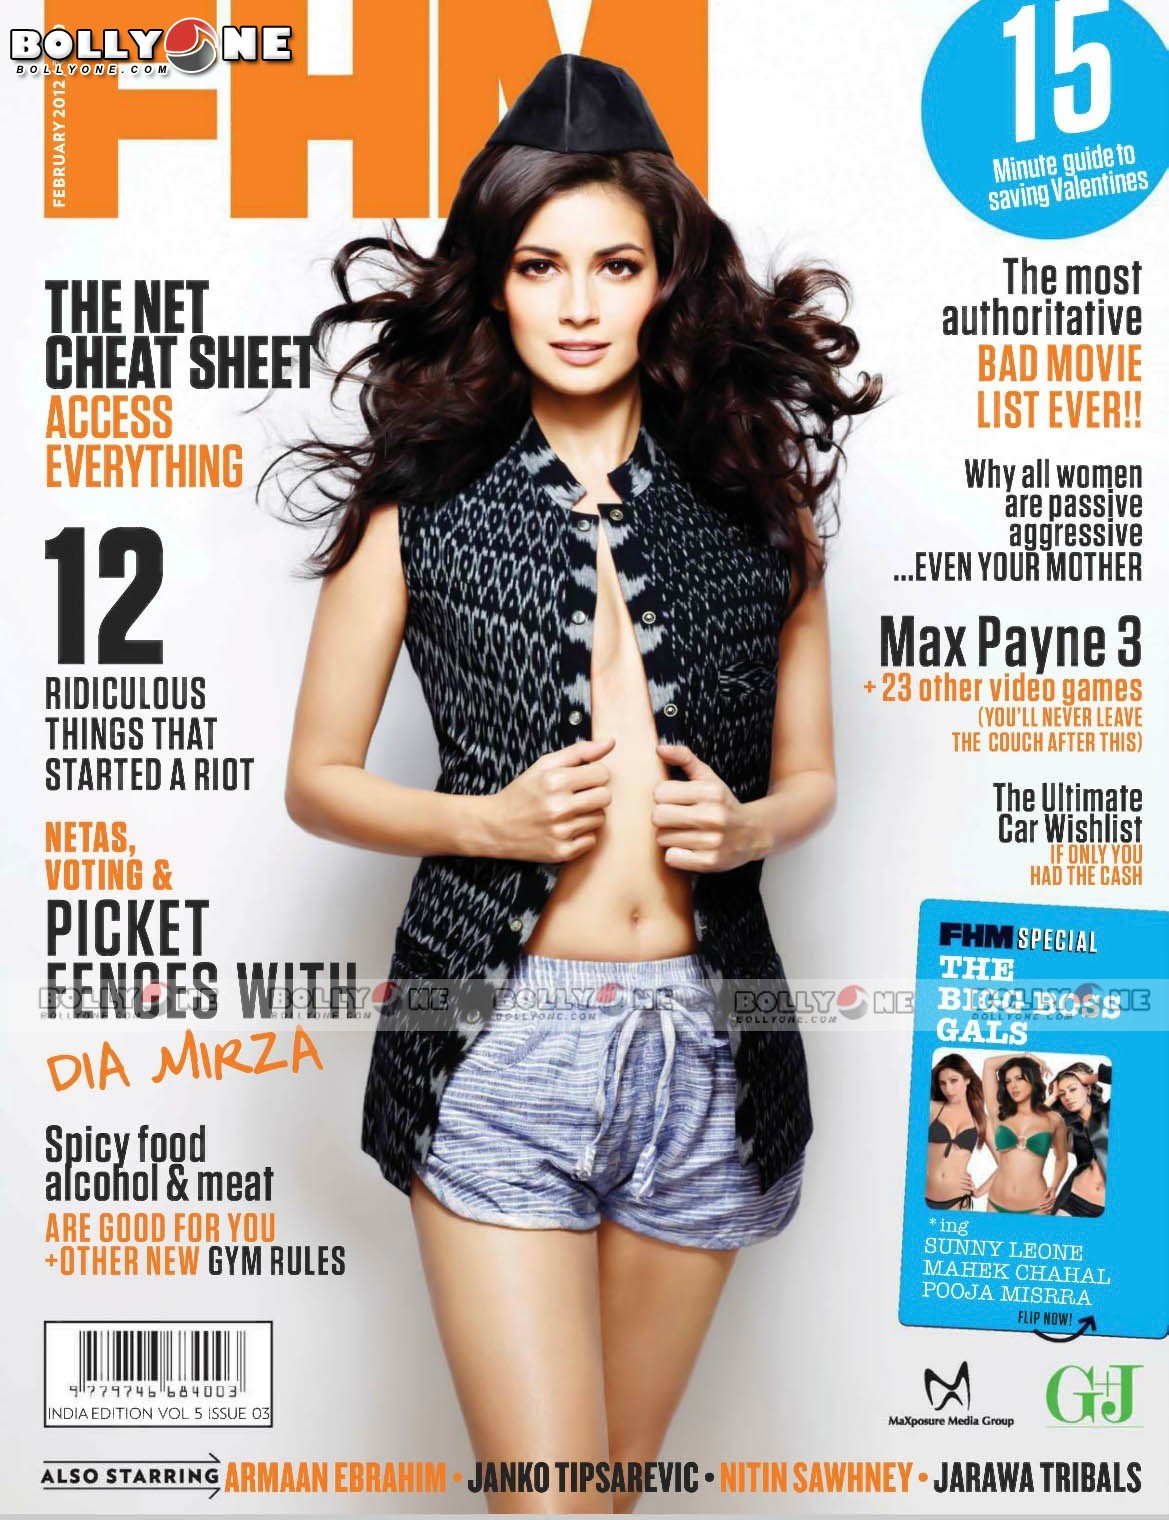 Dia Mirza FHM Scan1 - Dia Mirza FHM February 2012 Magazine HQ Scans